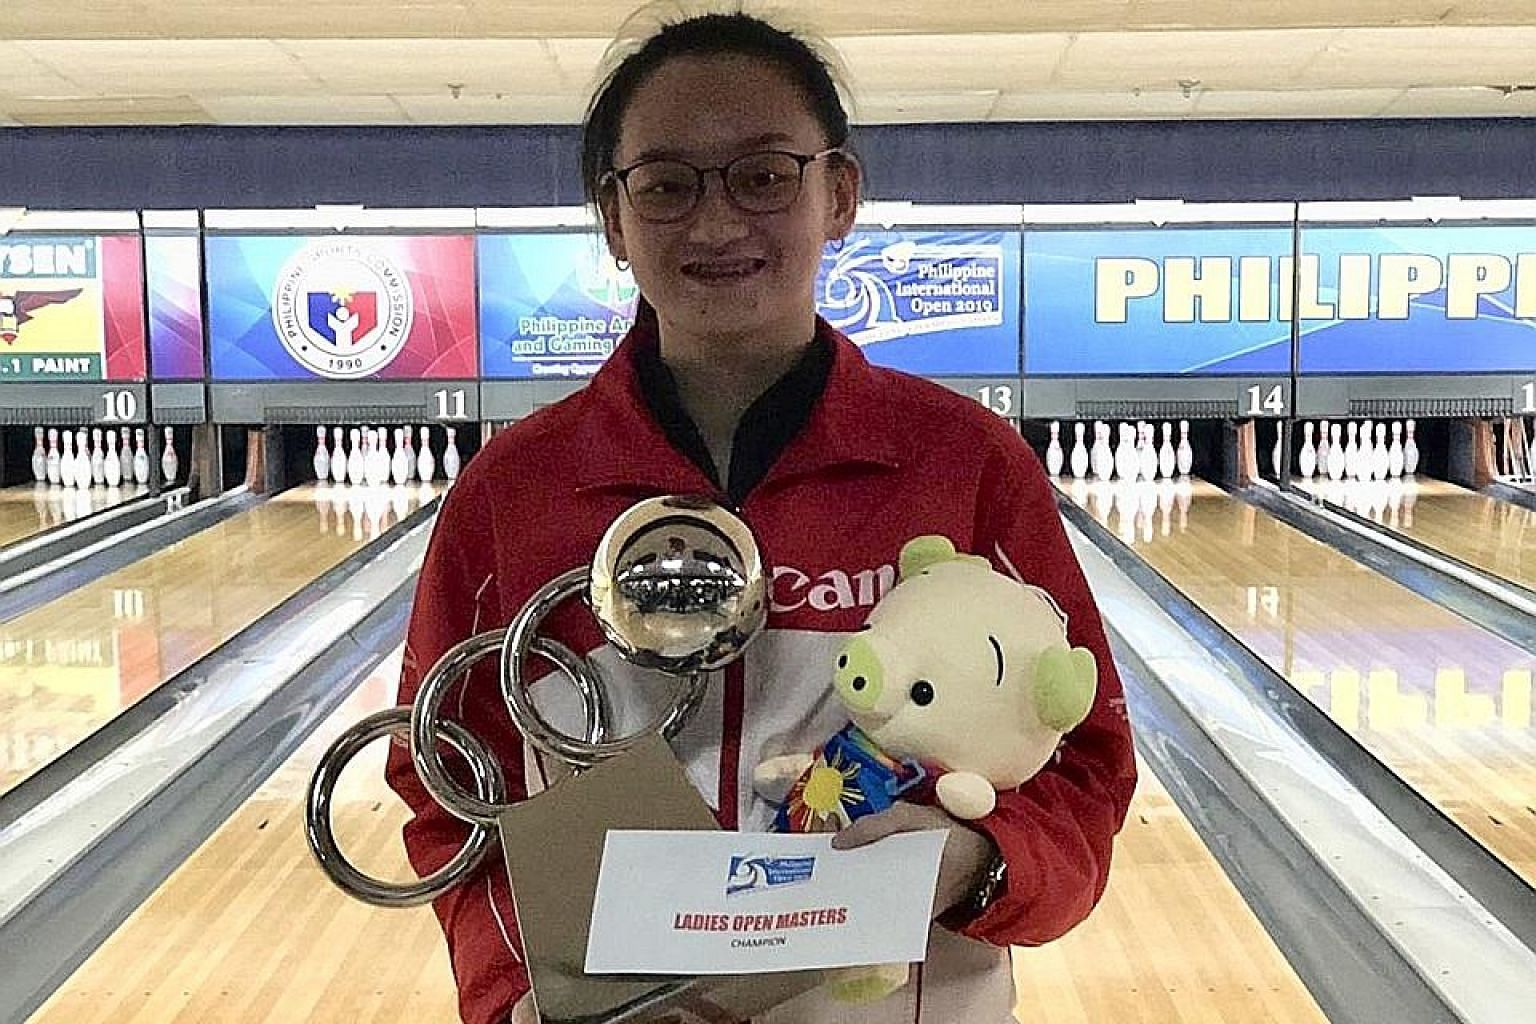 National training squad bowler Amabel Chua is all smiles after winning her first international title in Manila on Saturday. PHOTO: SINGAPORE BOWLING FEDERATION